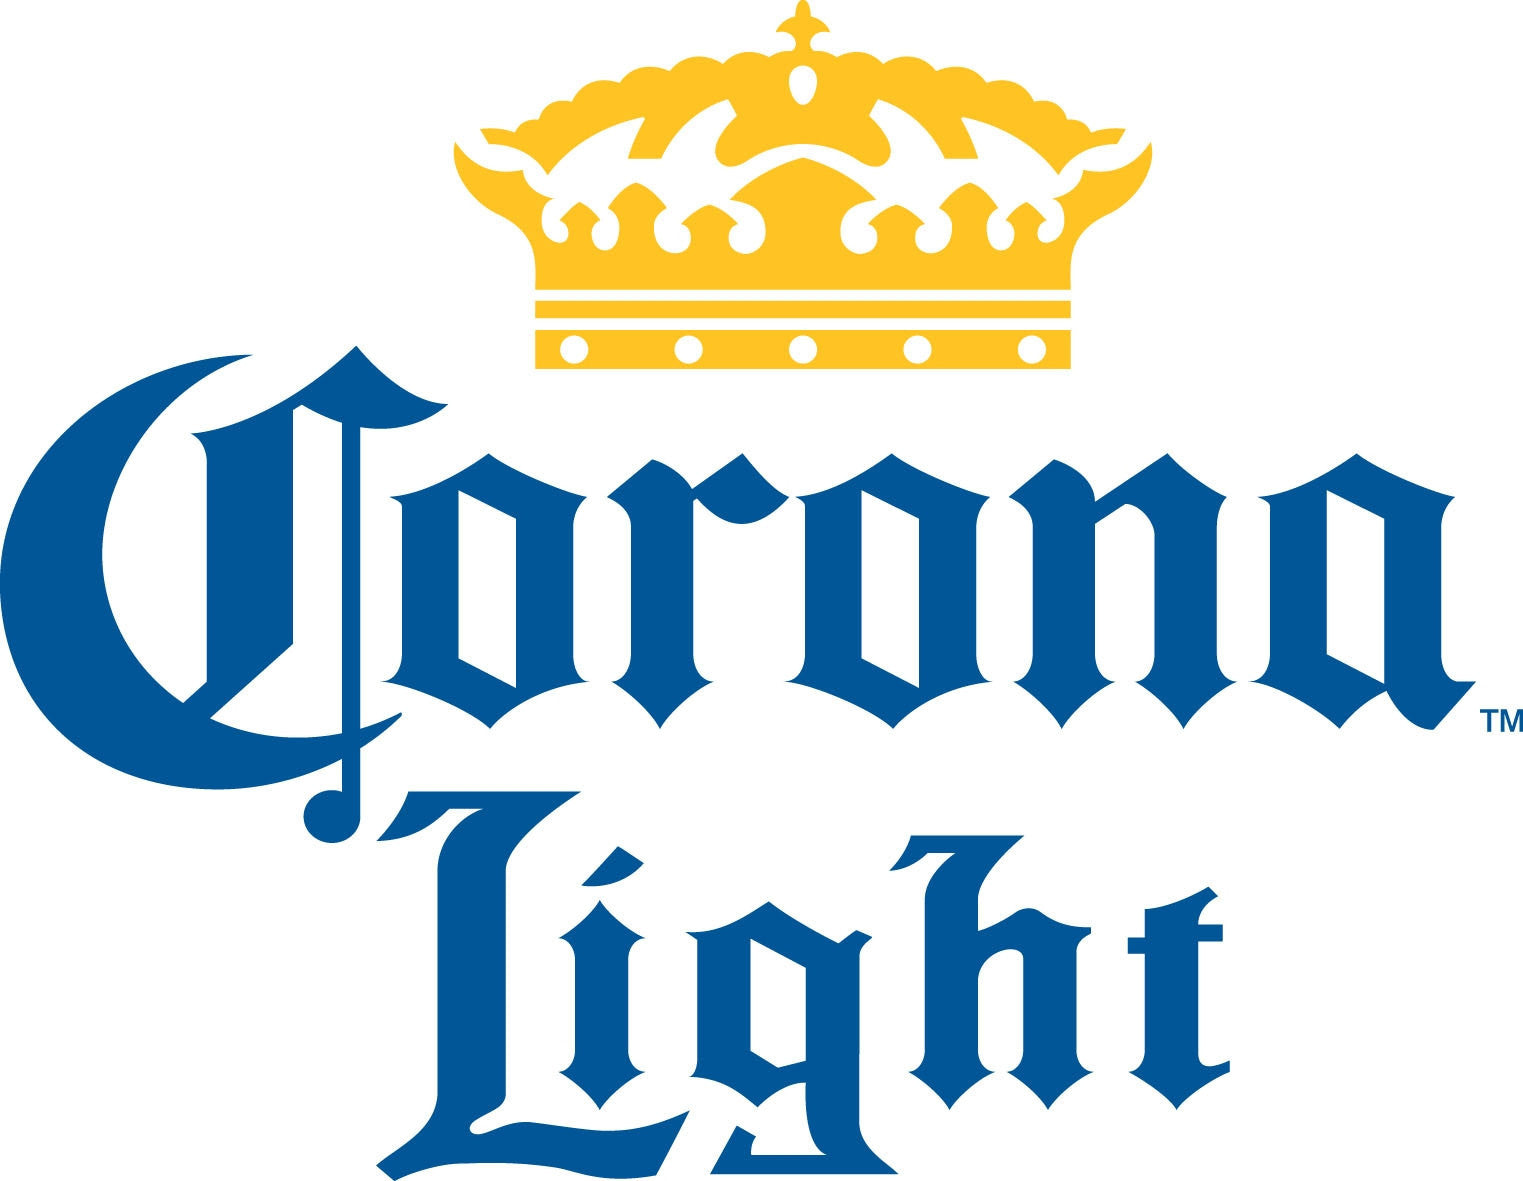 Corona Light 12 Pk Bottles